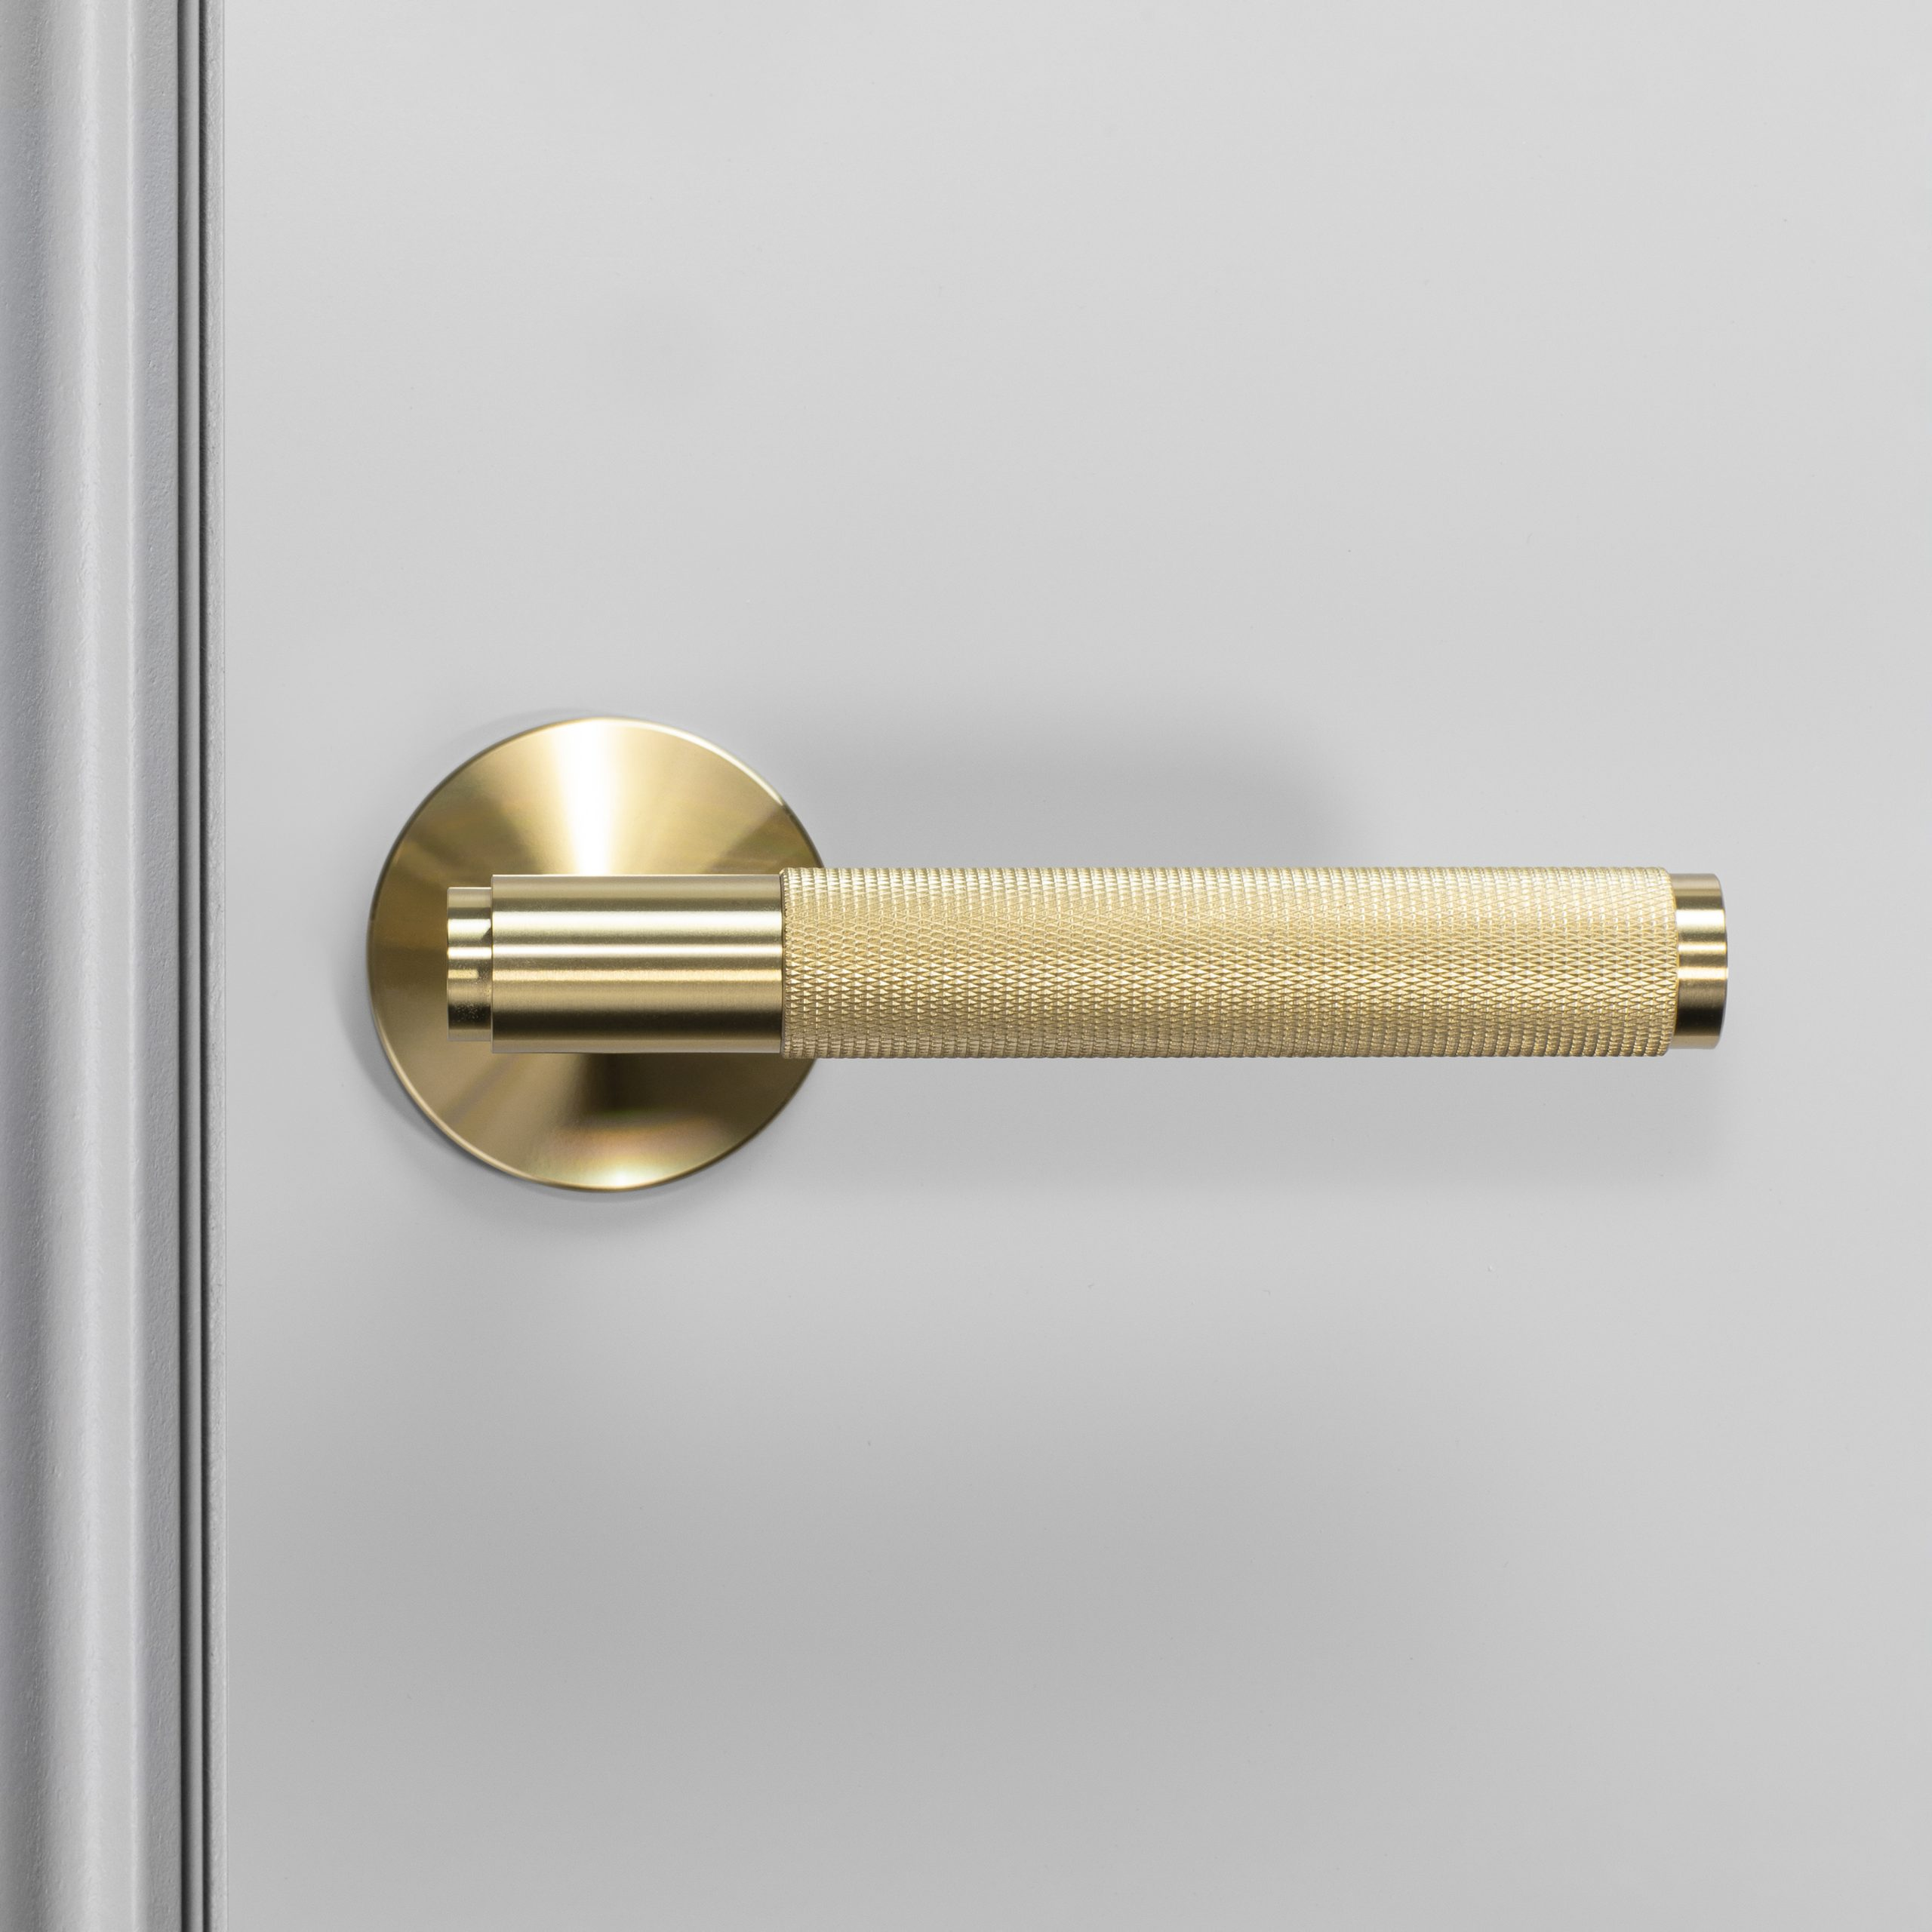 2. Buster+Punch_Door_Handle_Front_Fixed_Brass